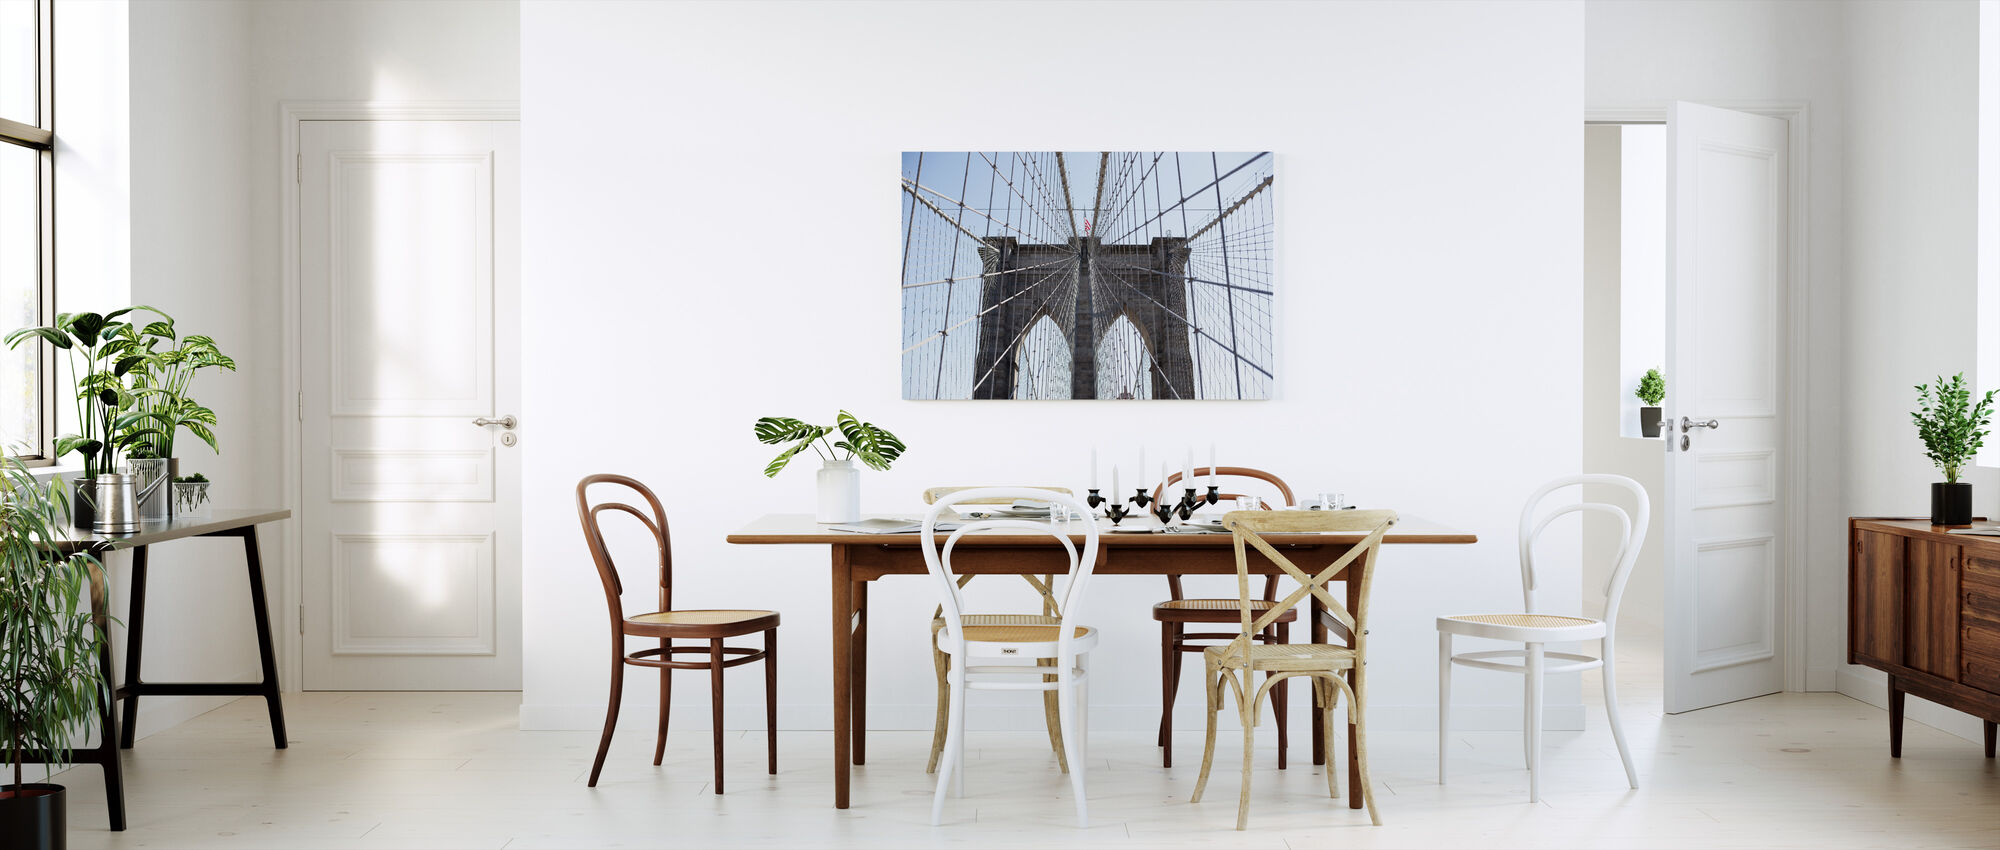 Brooklyn Bridge American Flag - Canvas print - Kitchen